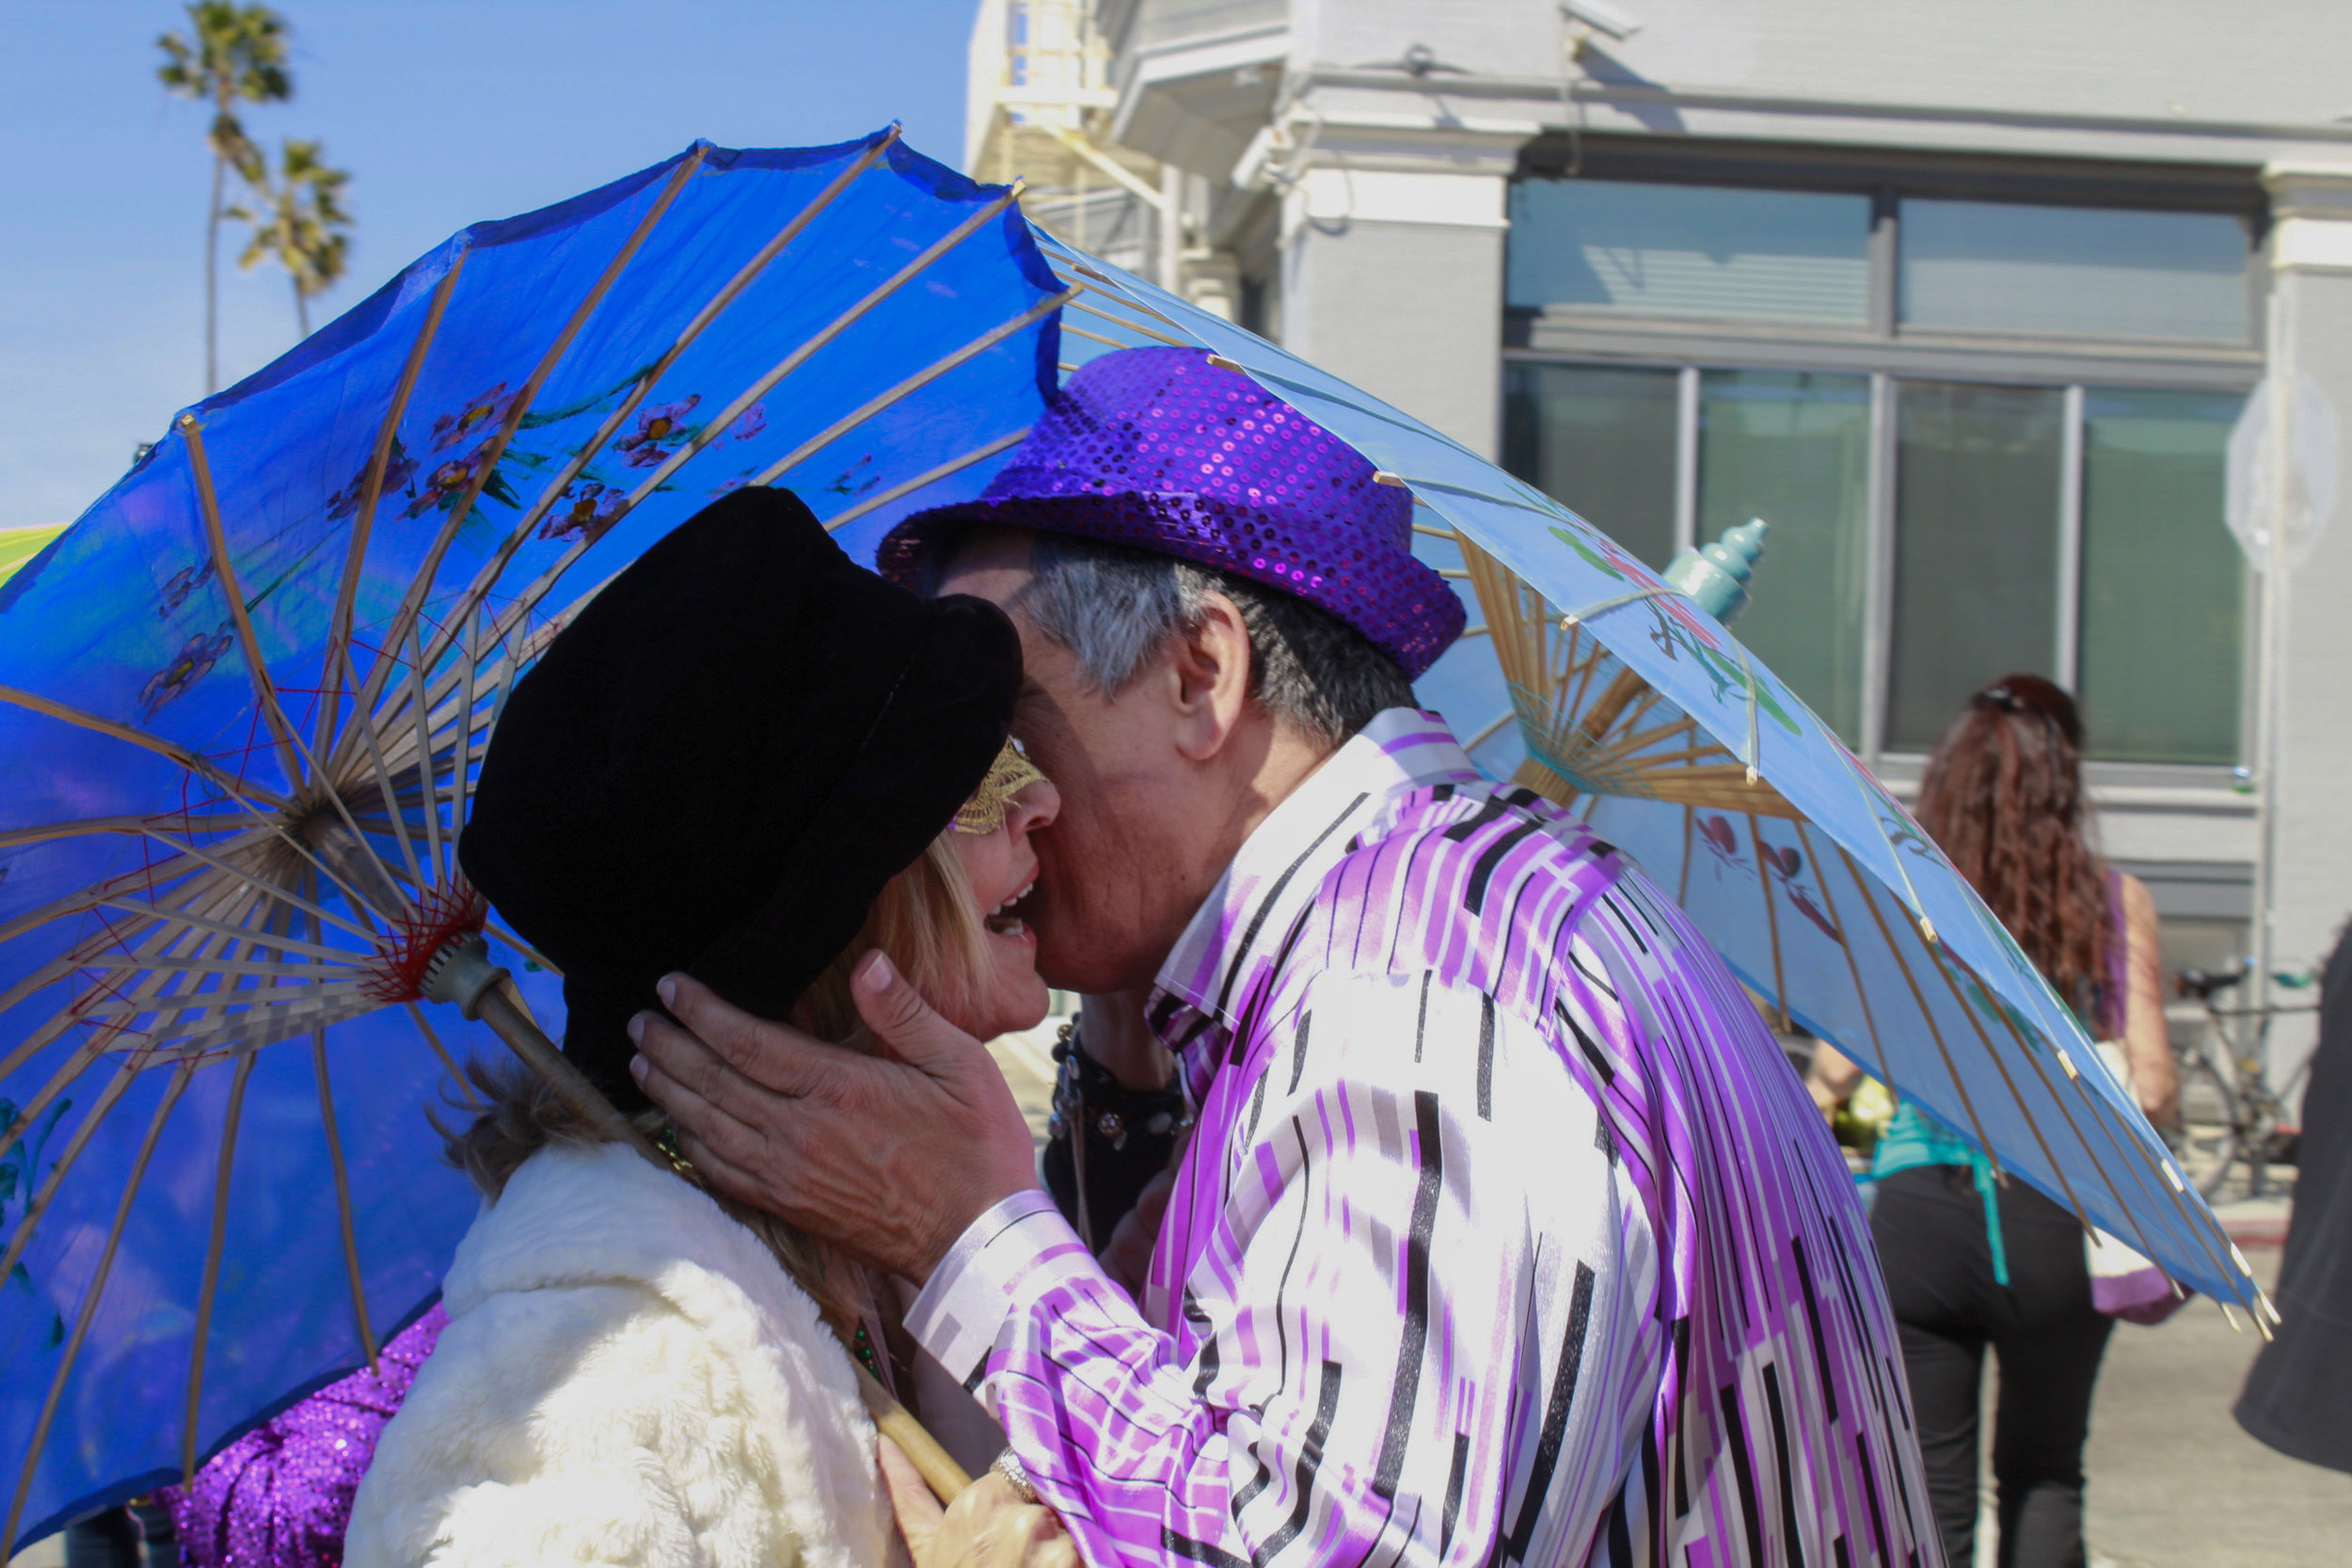 Gretchen Neville and Damian Boudreaux greeting one another at the pre-parade gathering of the 17th annual Venice Beach Mardi Gras parade, in Los Angeles, California. Feb 23, 2019. Photo by Danica Creahan.